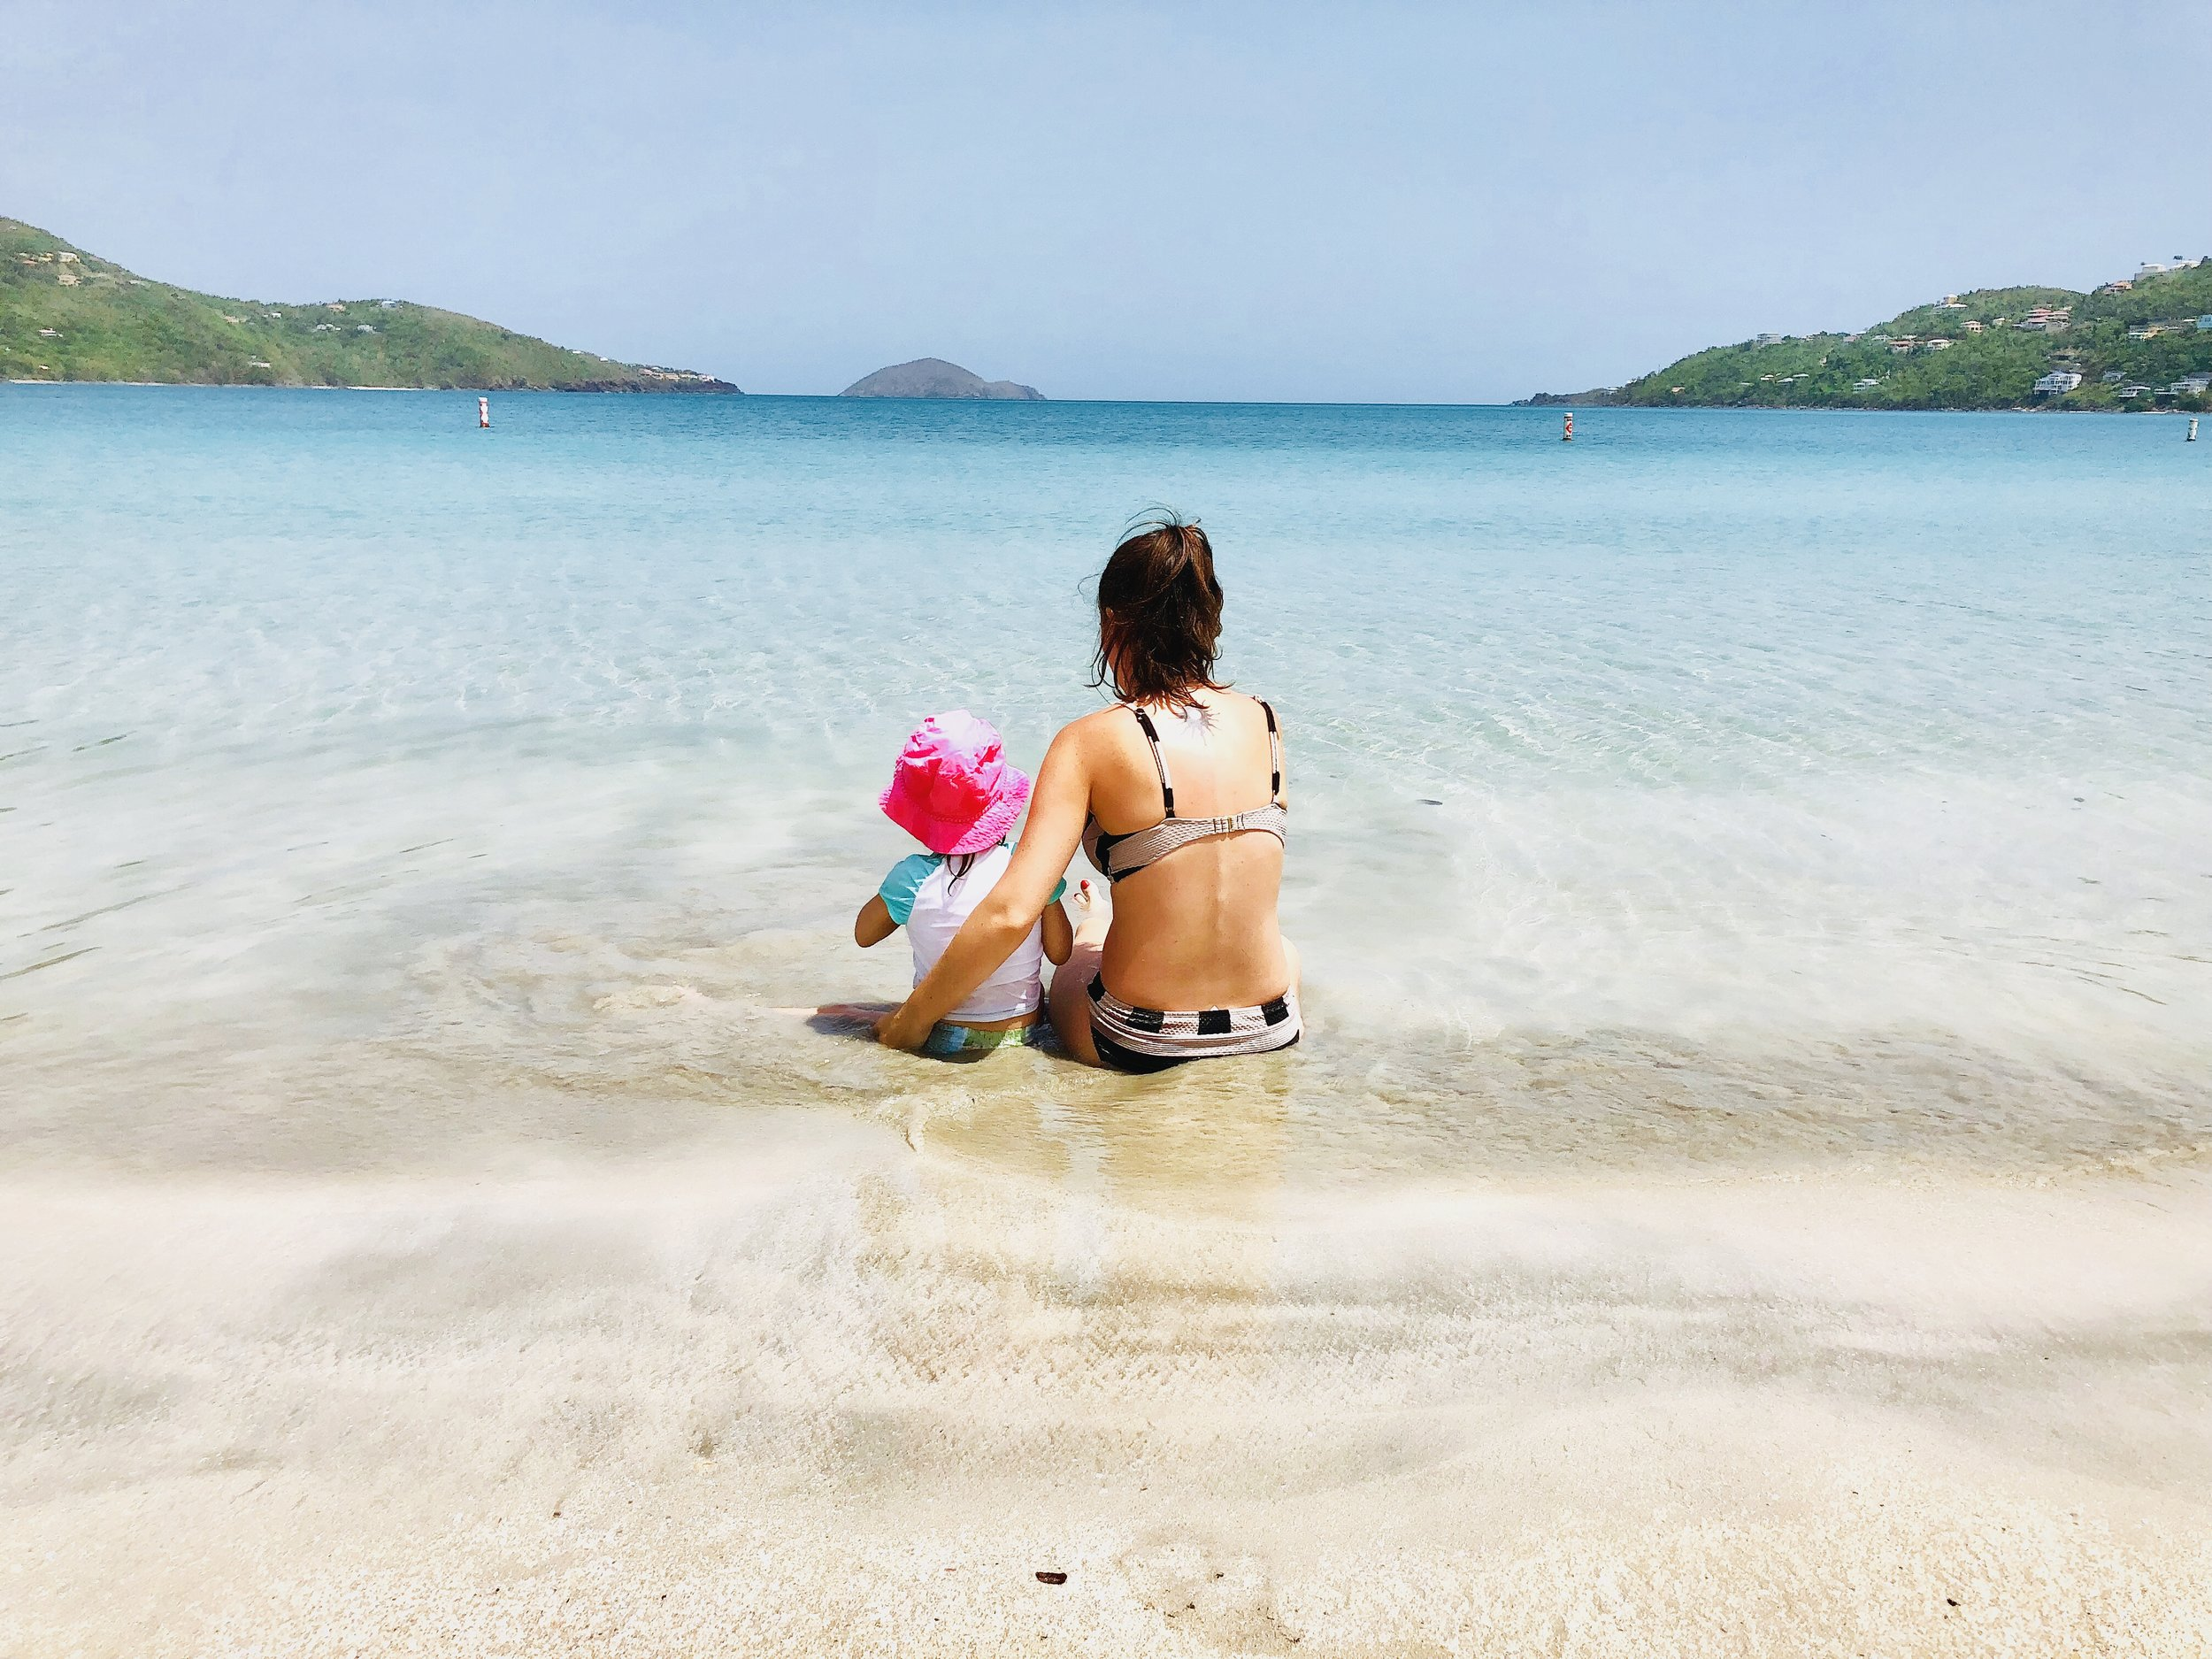 Ella and her mom relaxing in the warm Caribbean Sea.